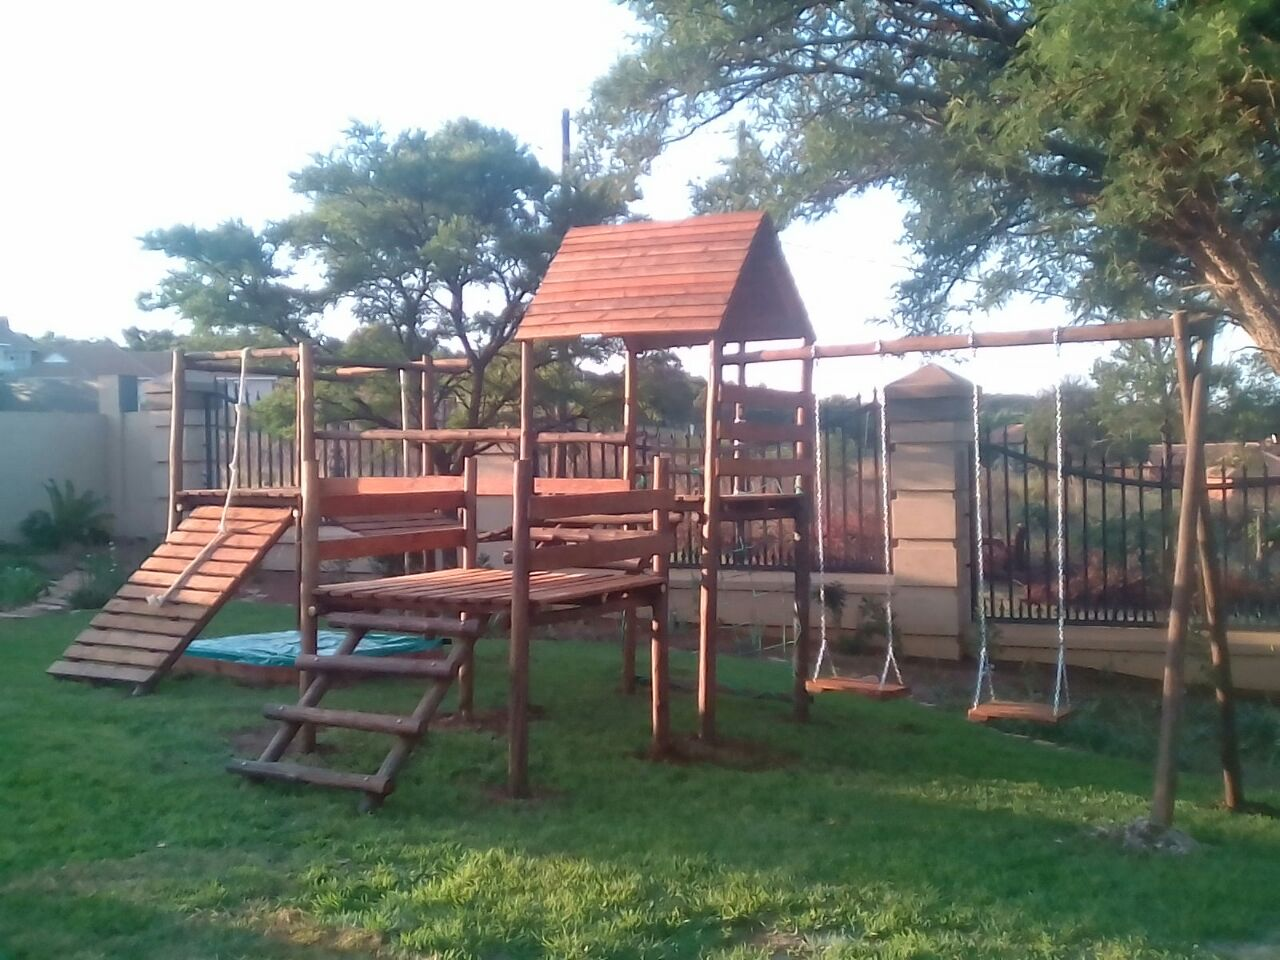 Jungle Gym For Sale >> Joy Trampolines Trampolines Playground Equipment Jungle Gyms